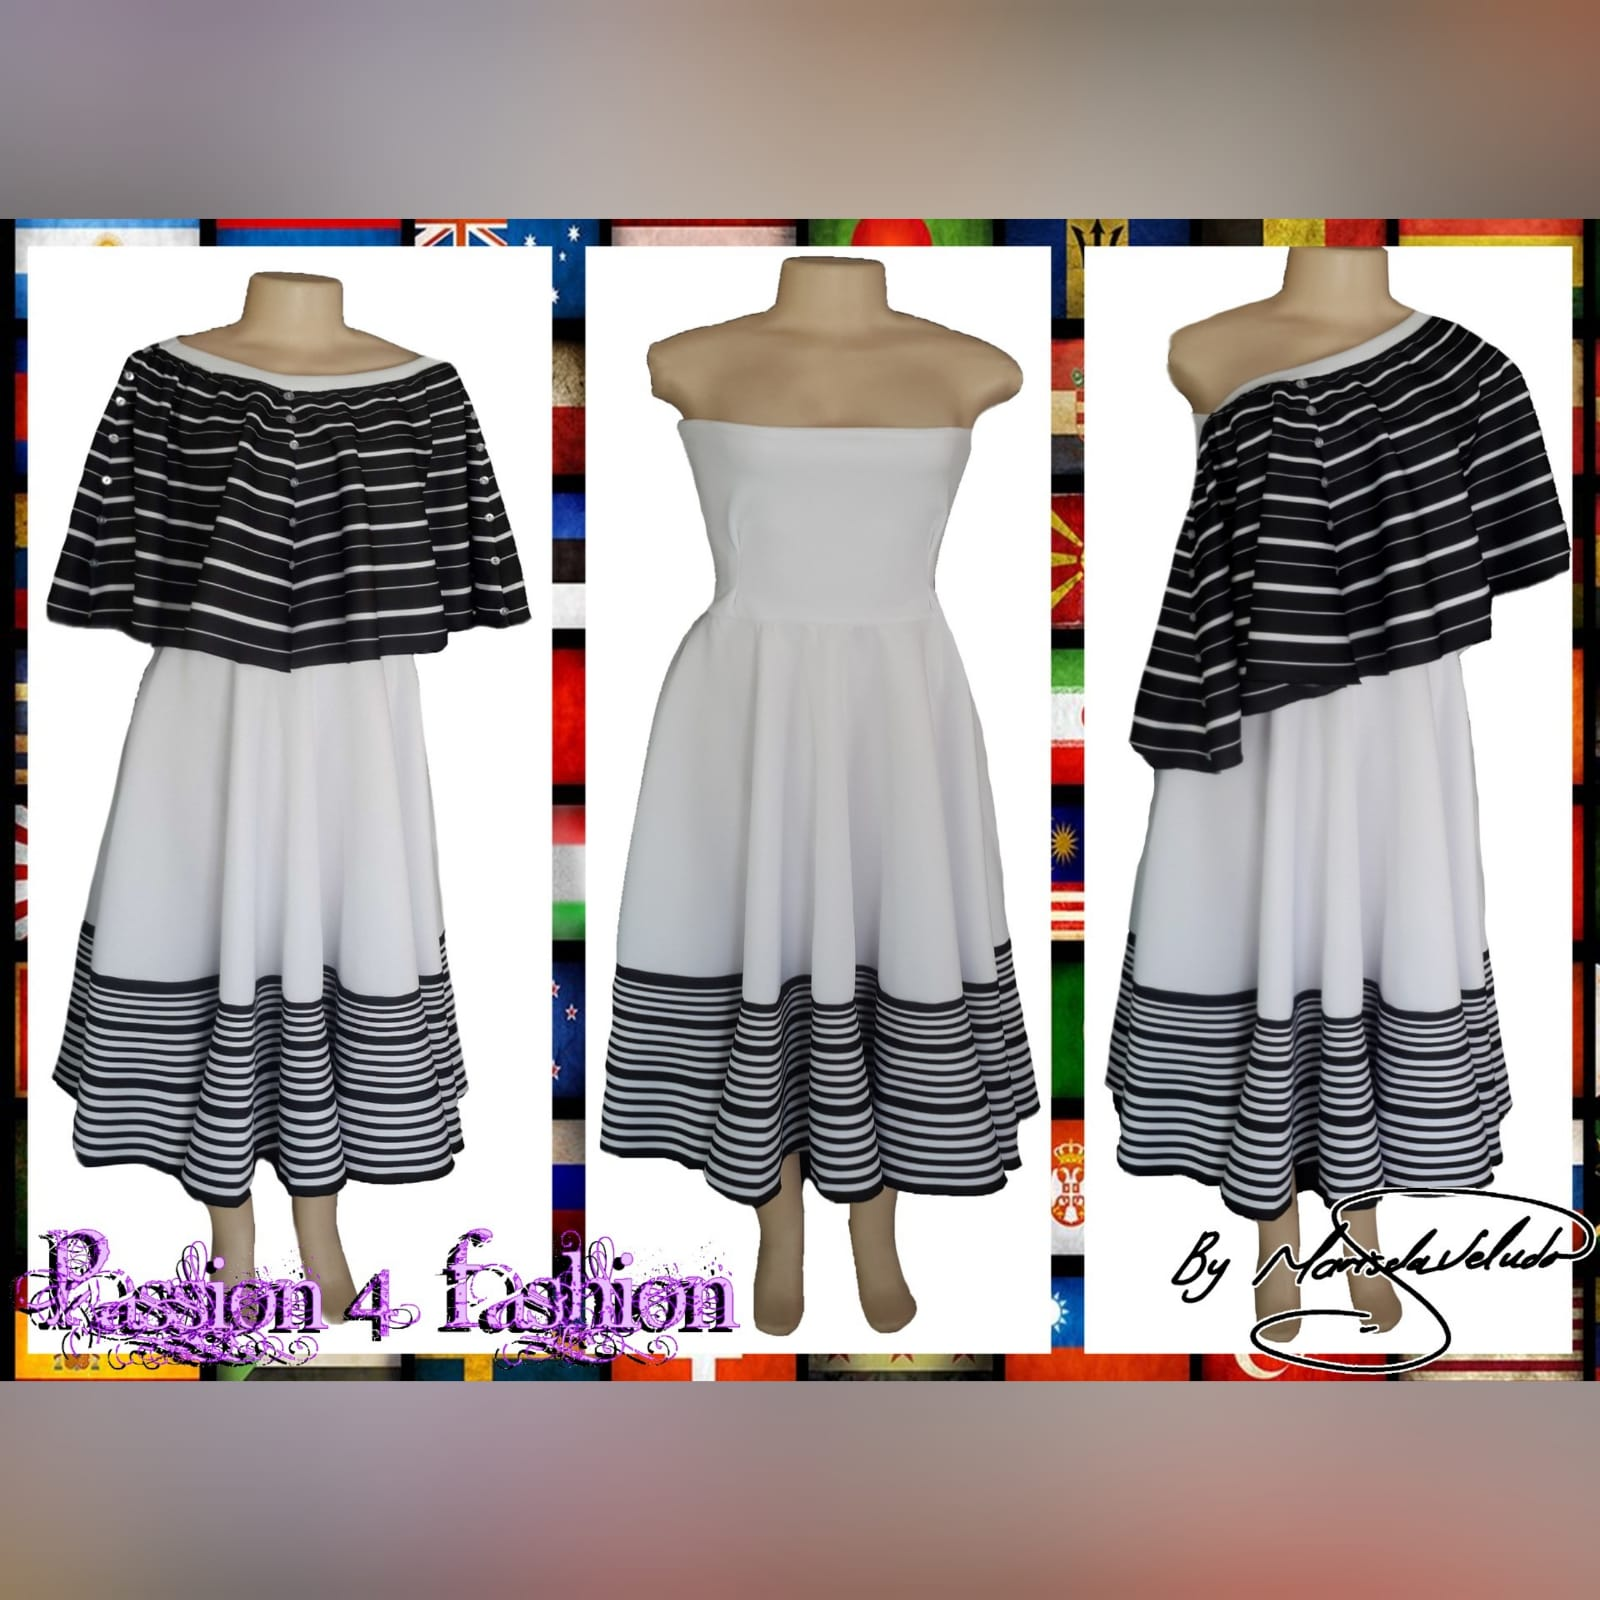 Black and white 2 piece modern traditional dress 2 xhosa black & white 2 piece modern traditional dress. Boob tube dress with a removable poncho